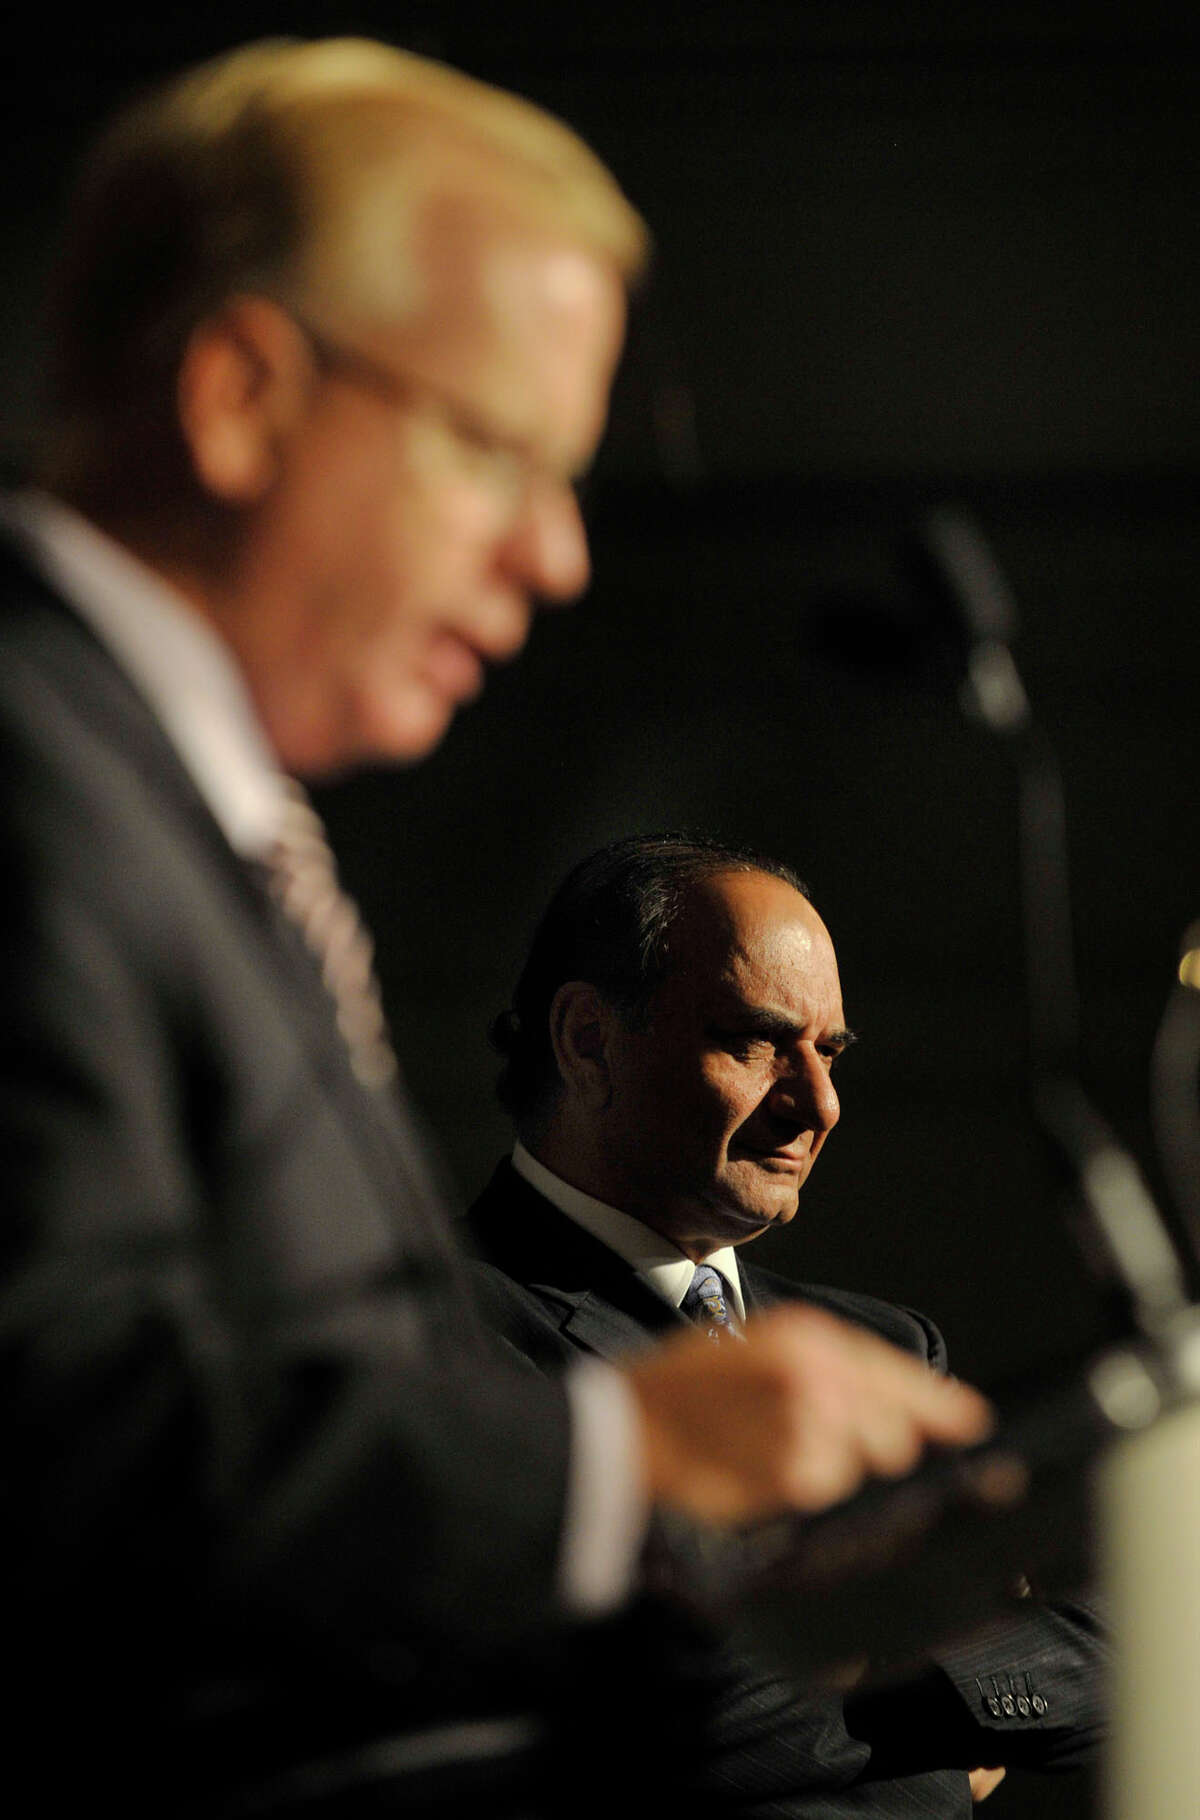 Danbury Mayor Mark Boughton, left, speaks and Farooq Kathwari, president and CEO of Ethan Allen, listens on stage during a reception celebrating the company's 80th anniversary at the Ethan Allen Hotel in Danbury on Tuesday, Oct. 9, 2012.